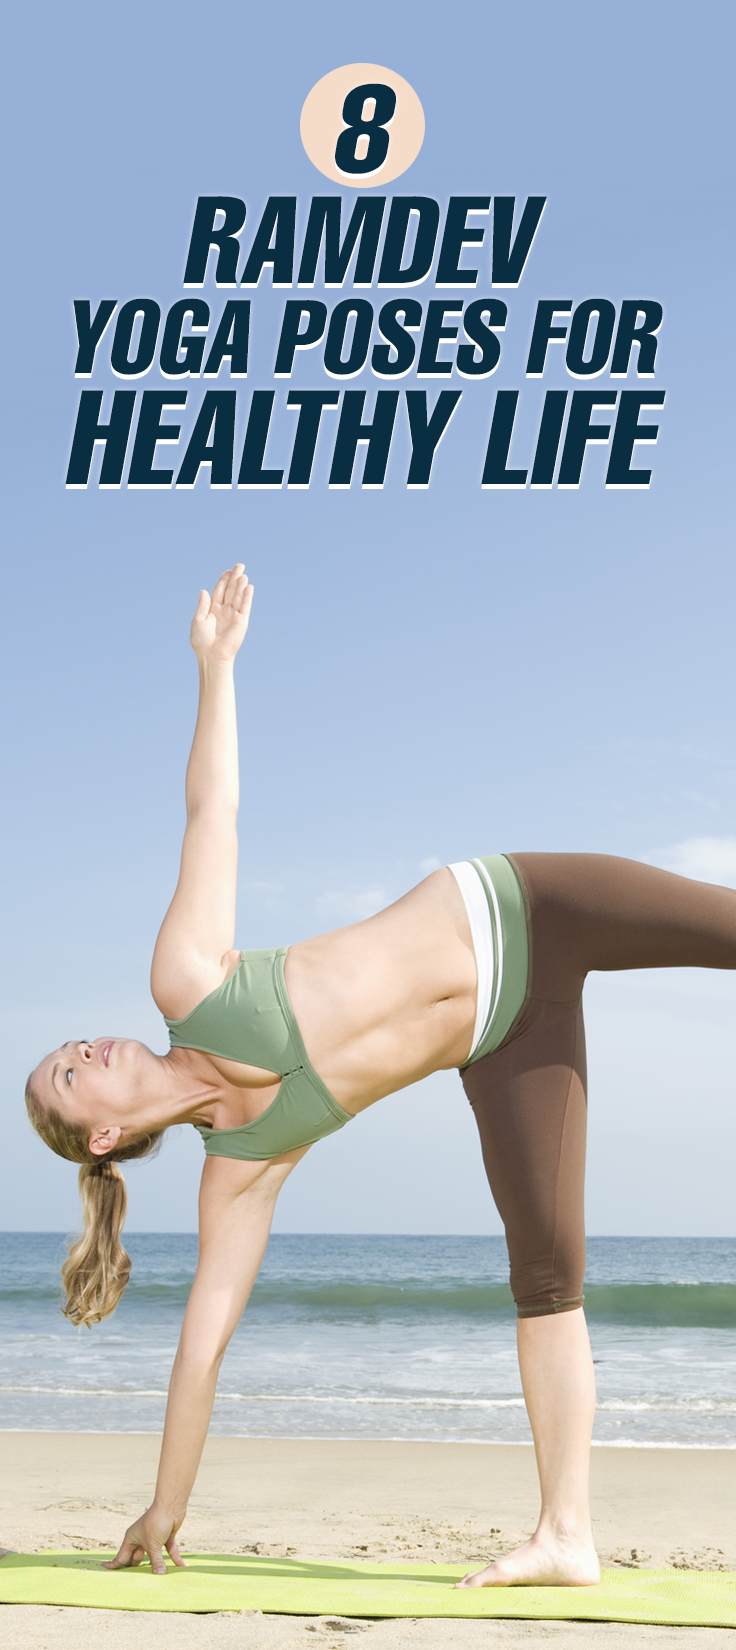 7 Baba Ramdev Yoga Poses For Leading A Healthy Life